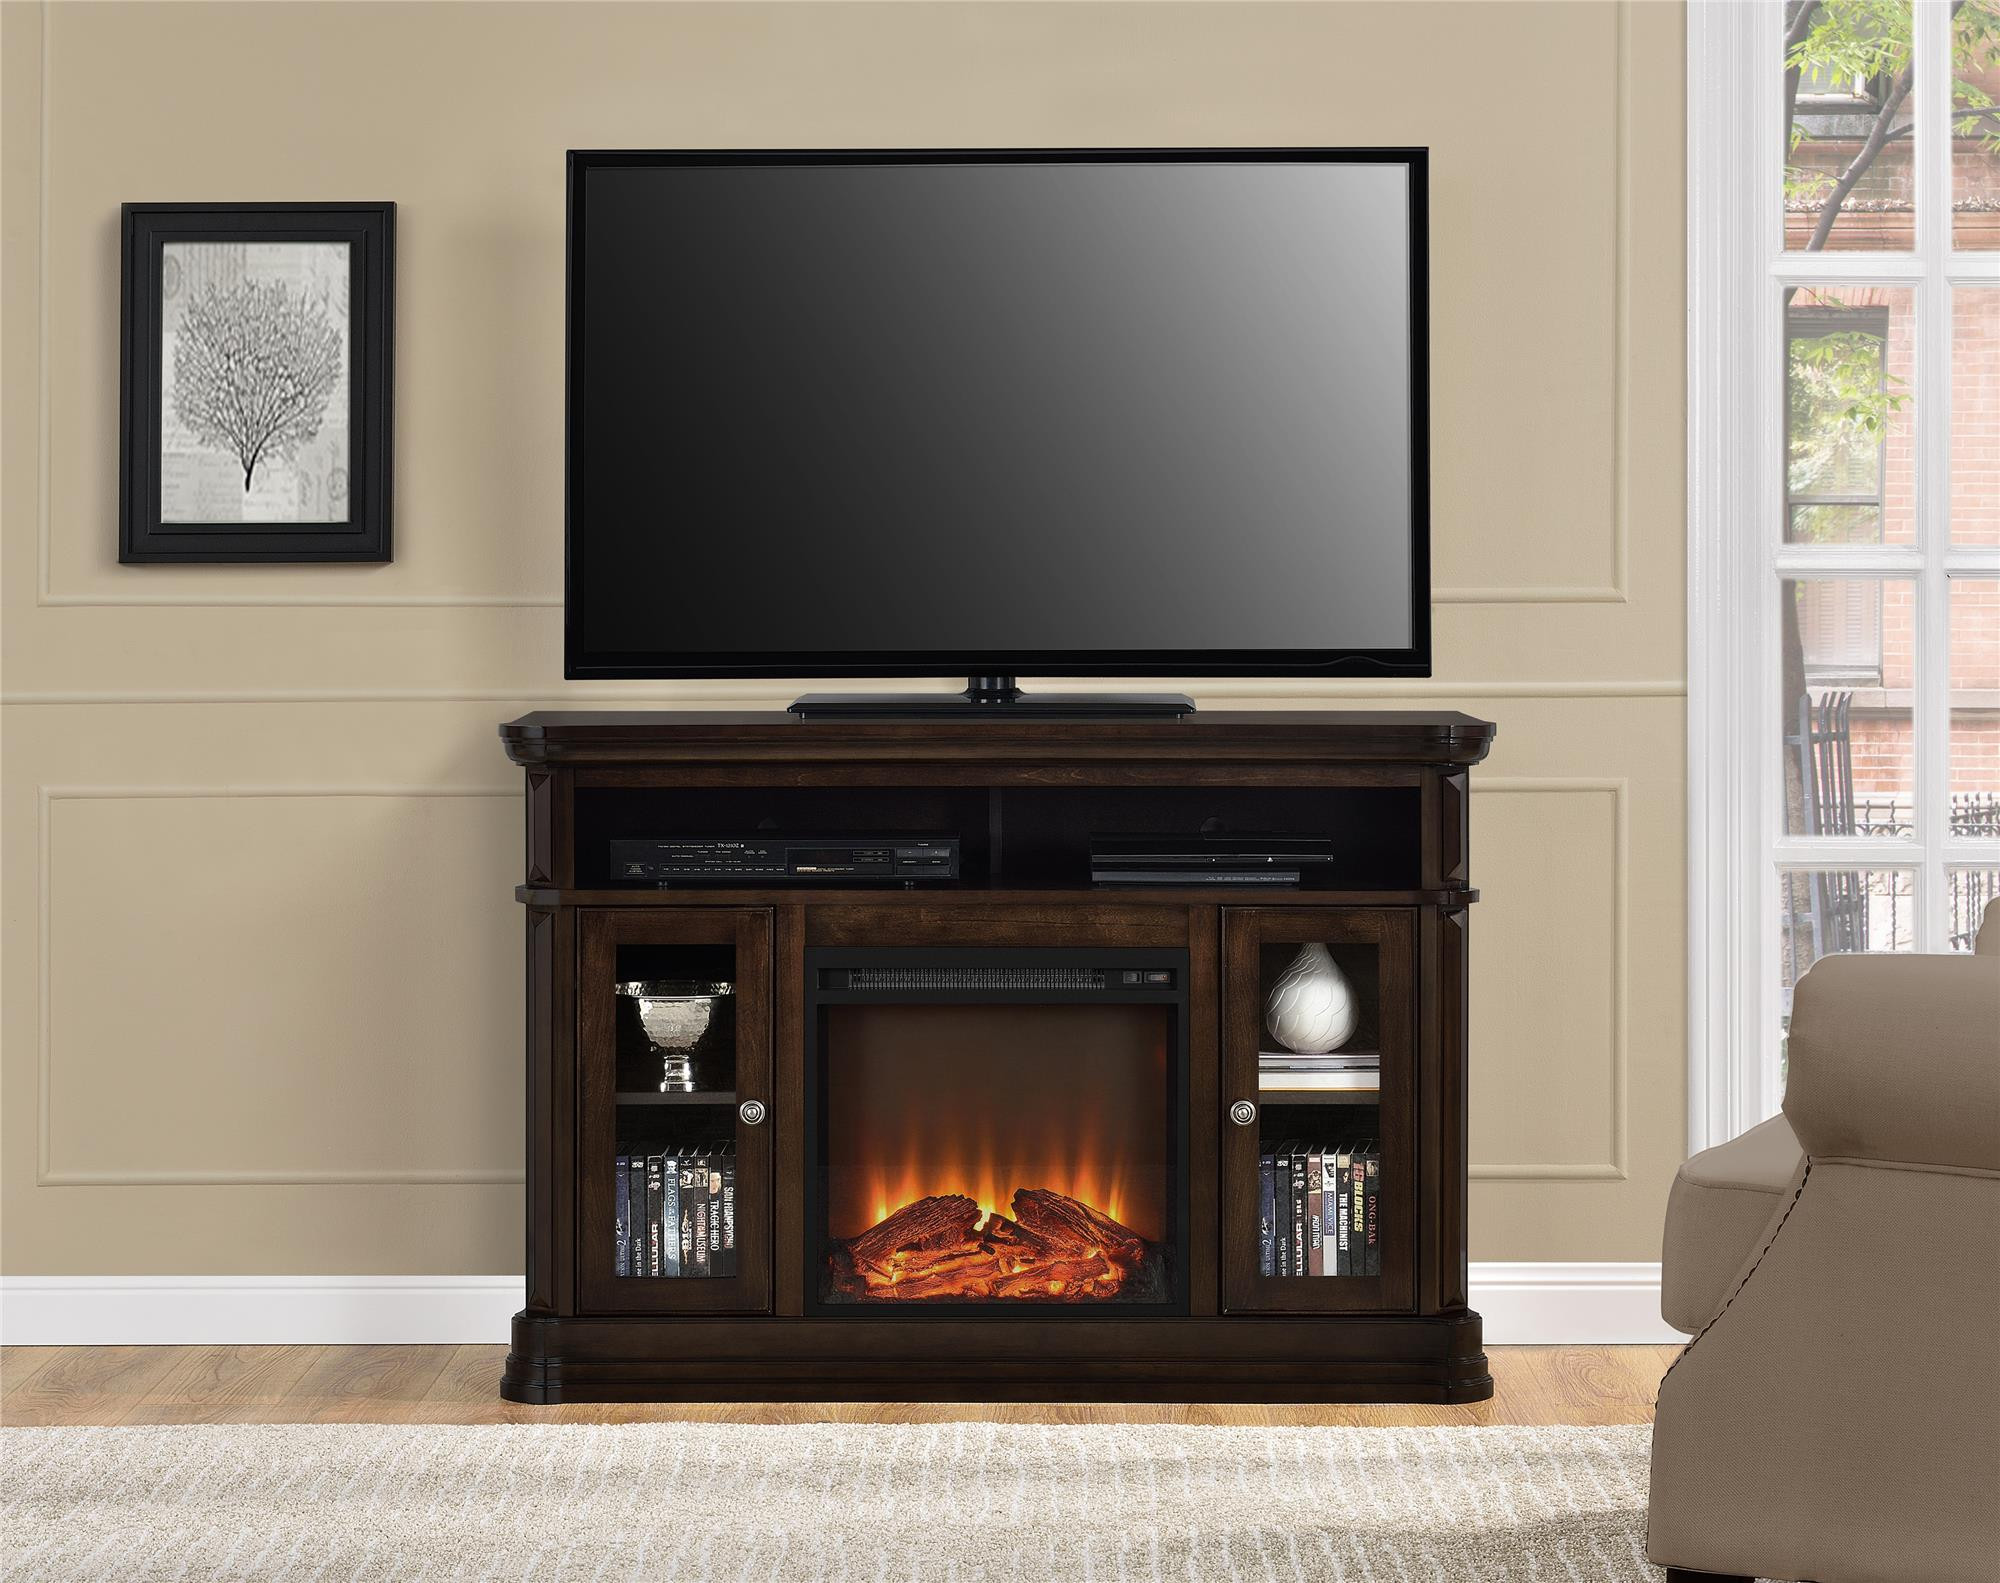 Best ideas about Kmart Fireplace Tv Stand . Save or Pin Dorel Home Furnishings Brooklyn Fireplace TV Stand Now.